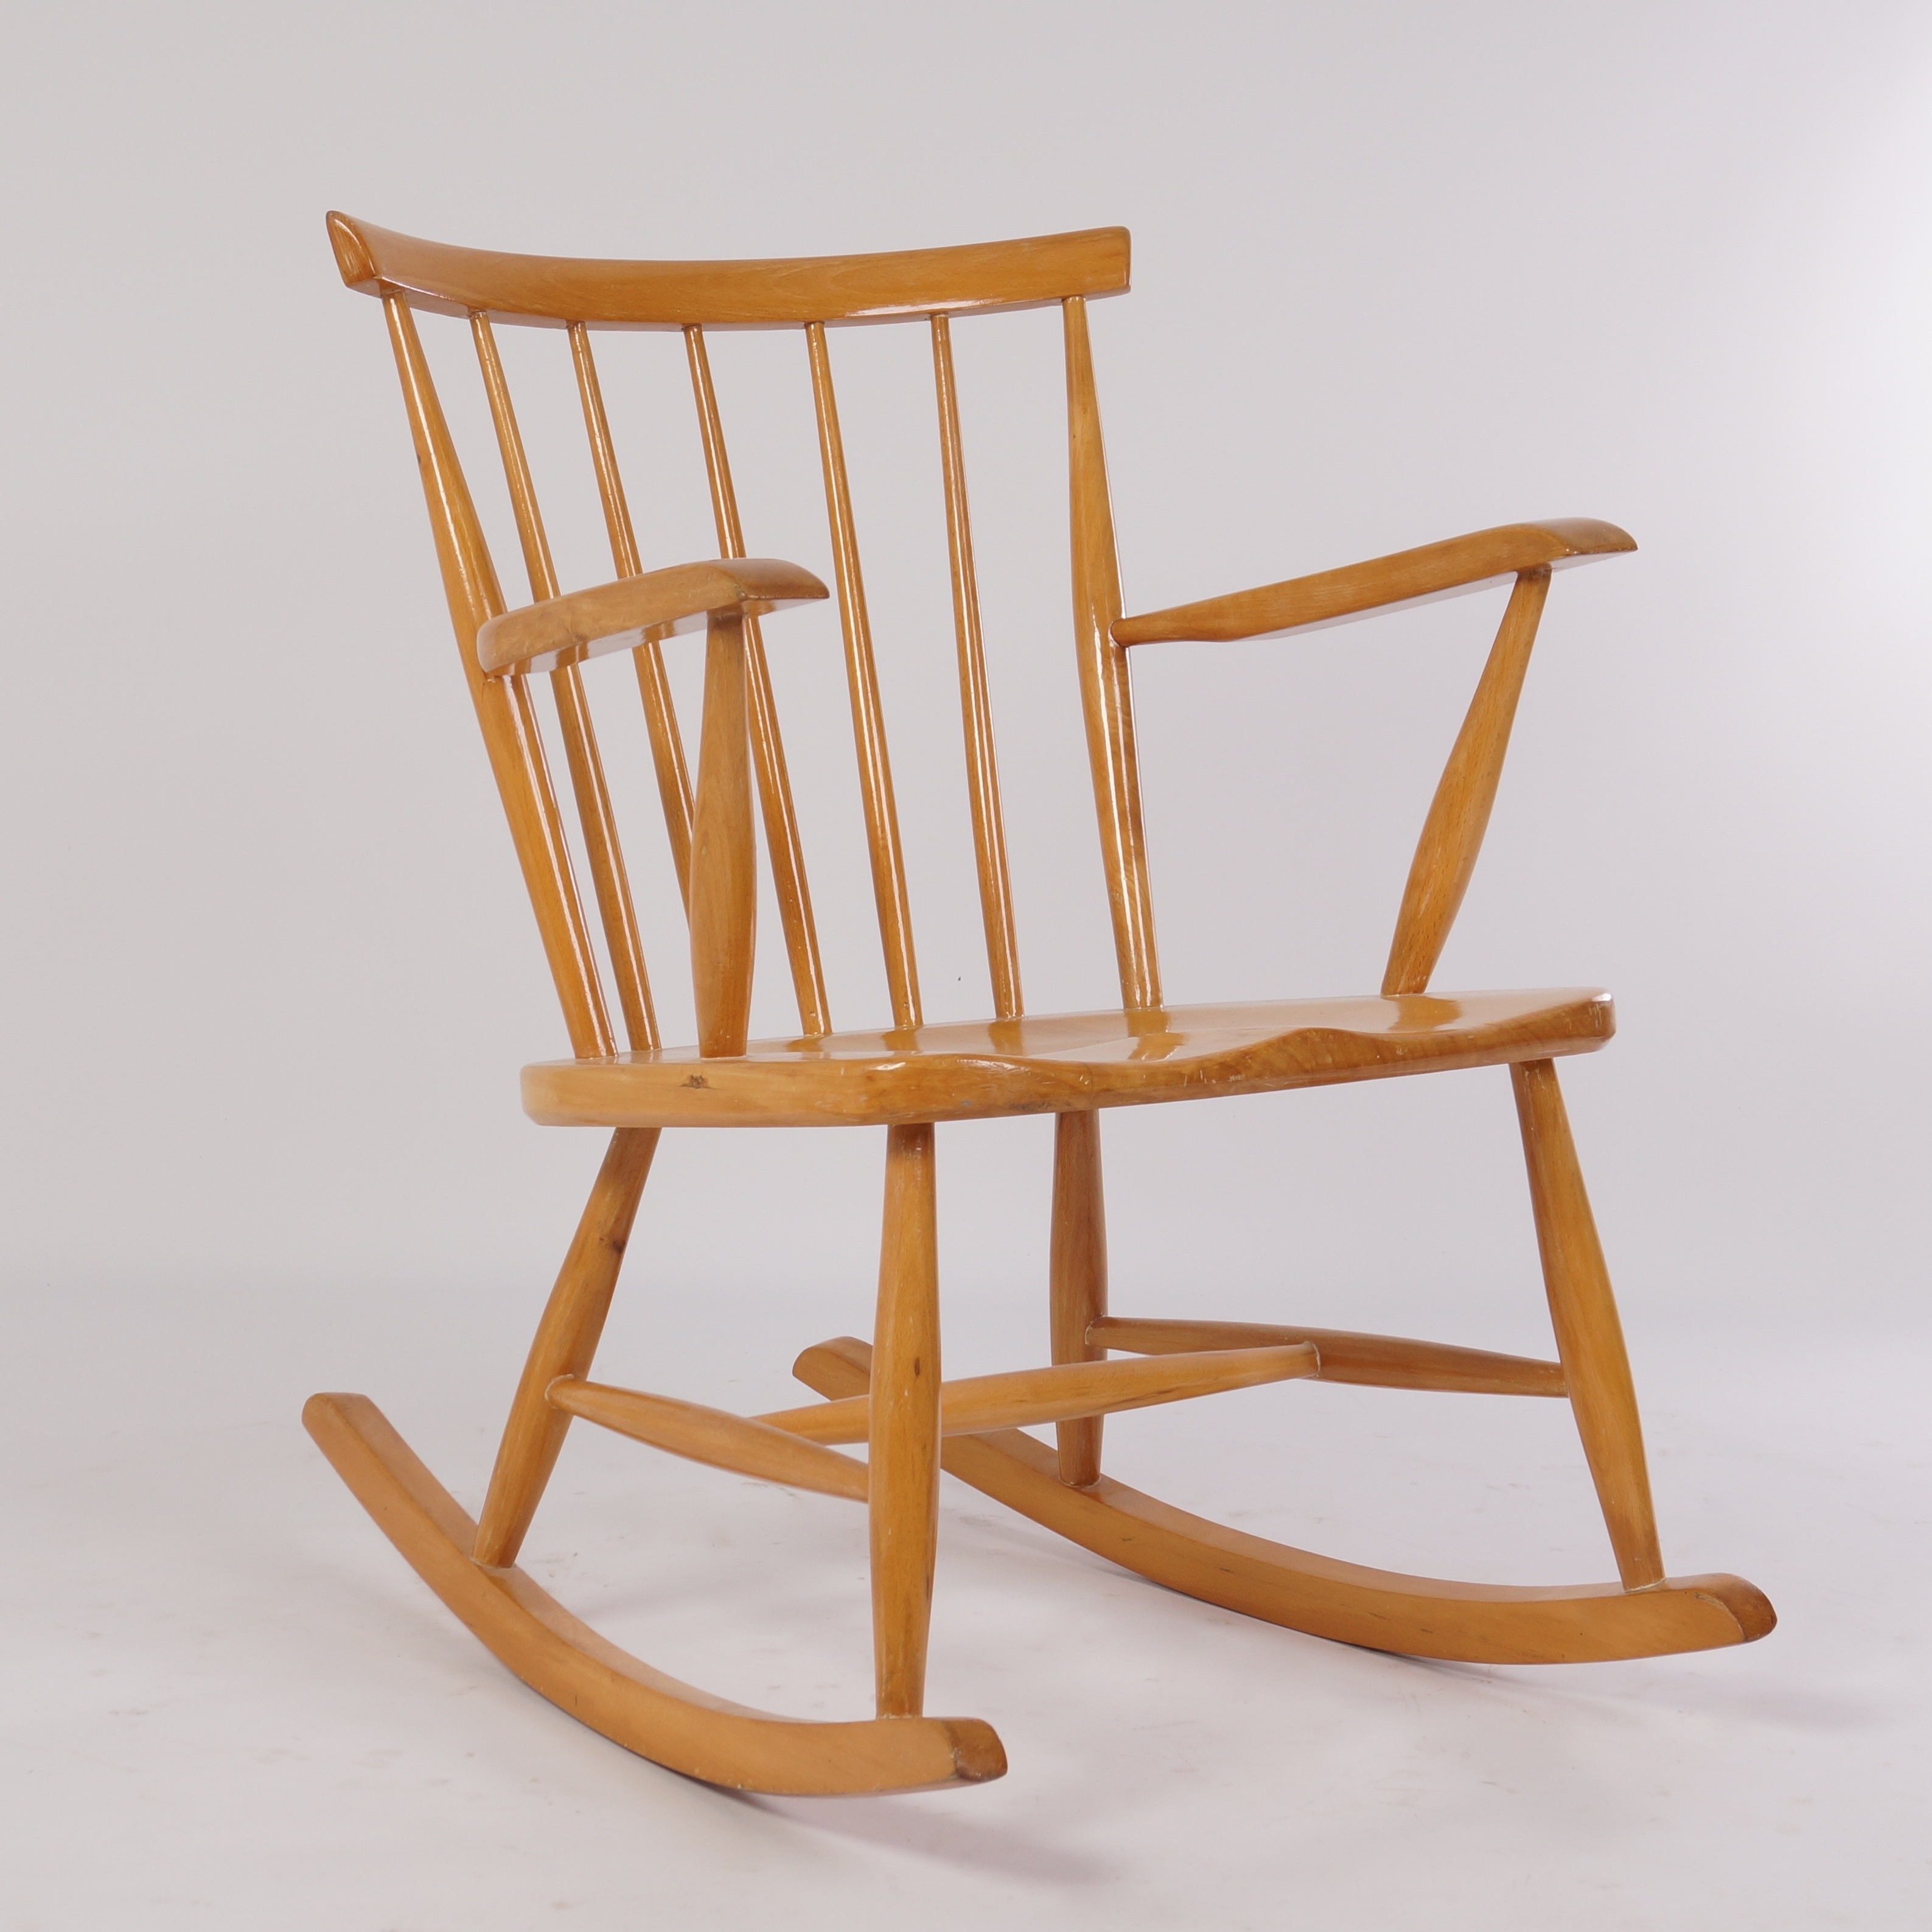 Vintage Birch Wood Rocking Chair From The 60S (Gallery 9 of 20)